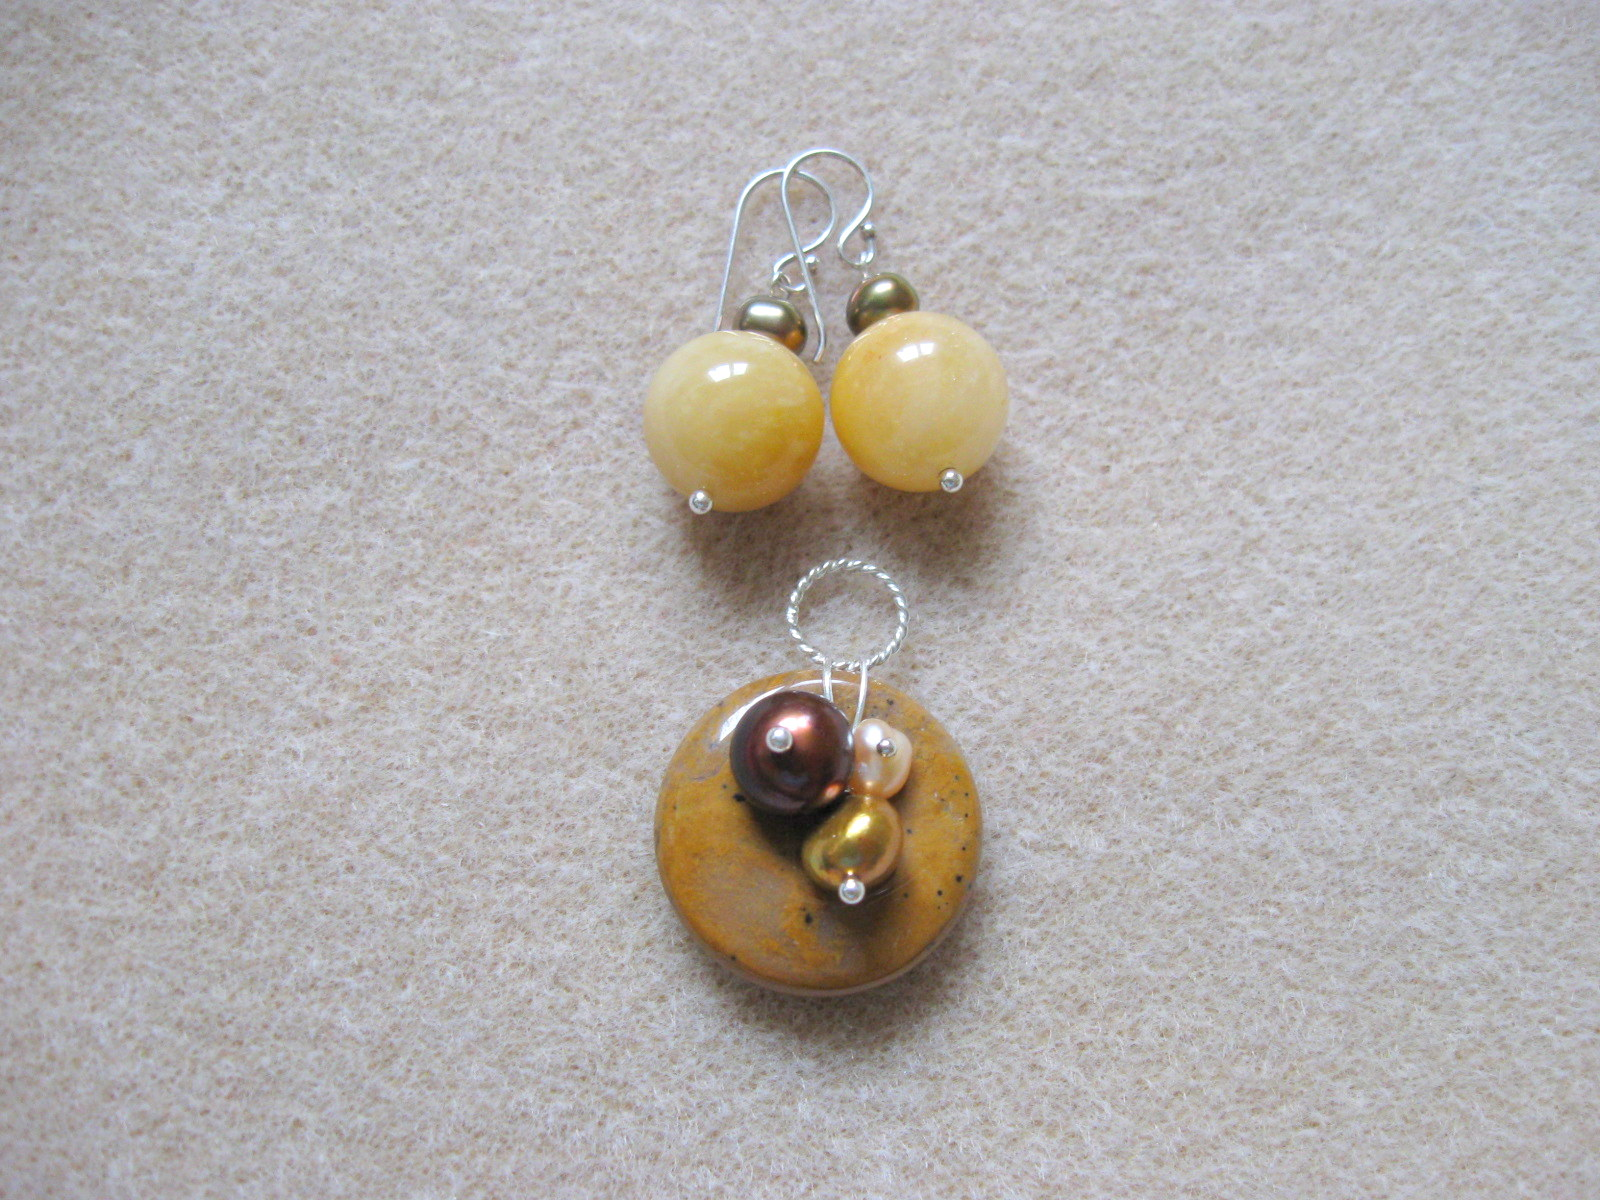 Honey jade, agate and freshwater pearls earrings and pendant set